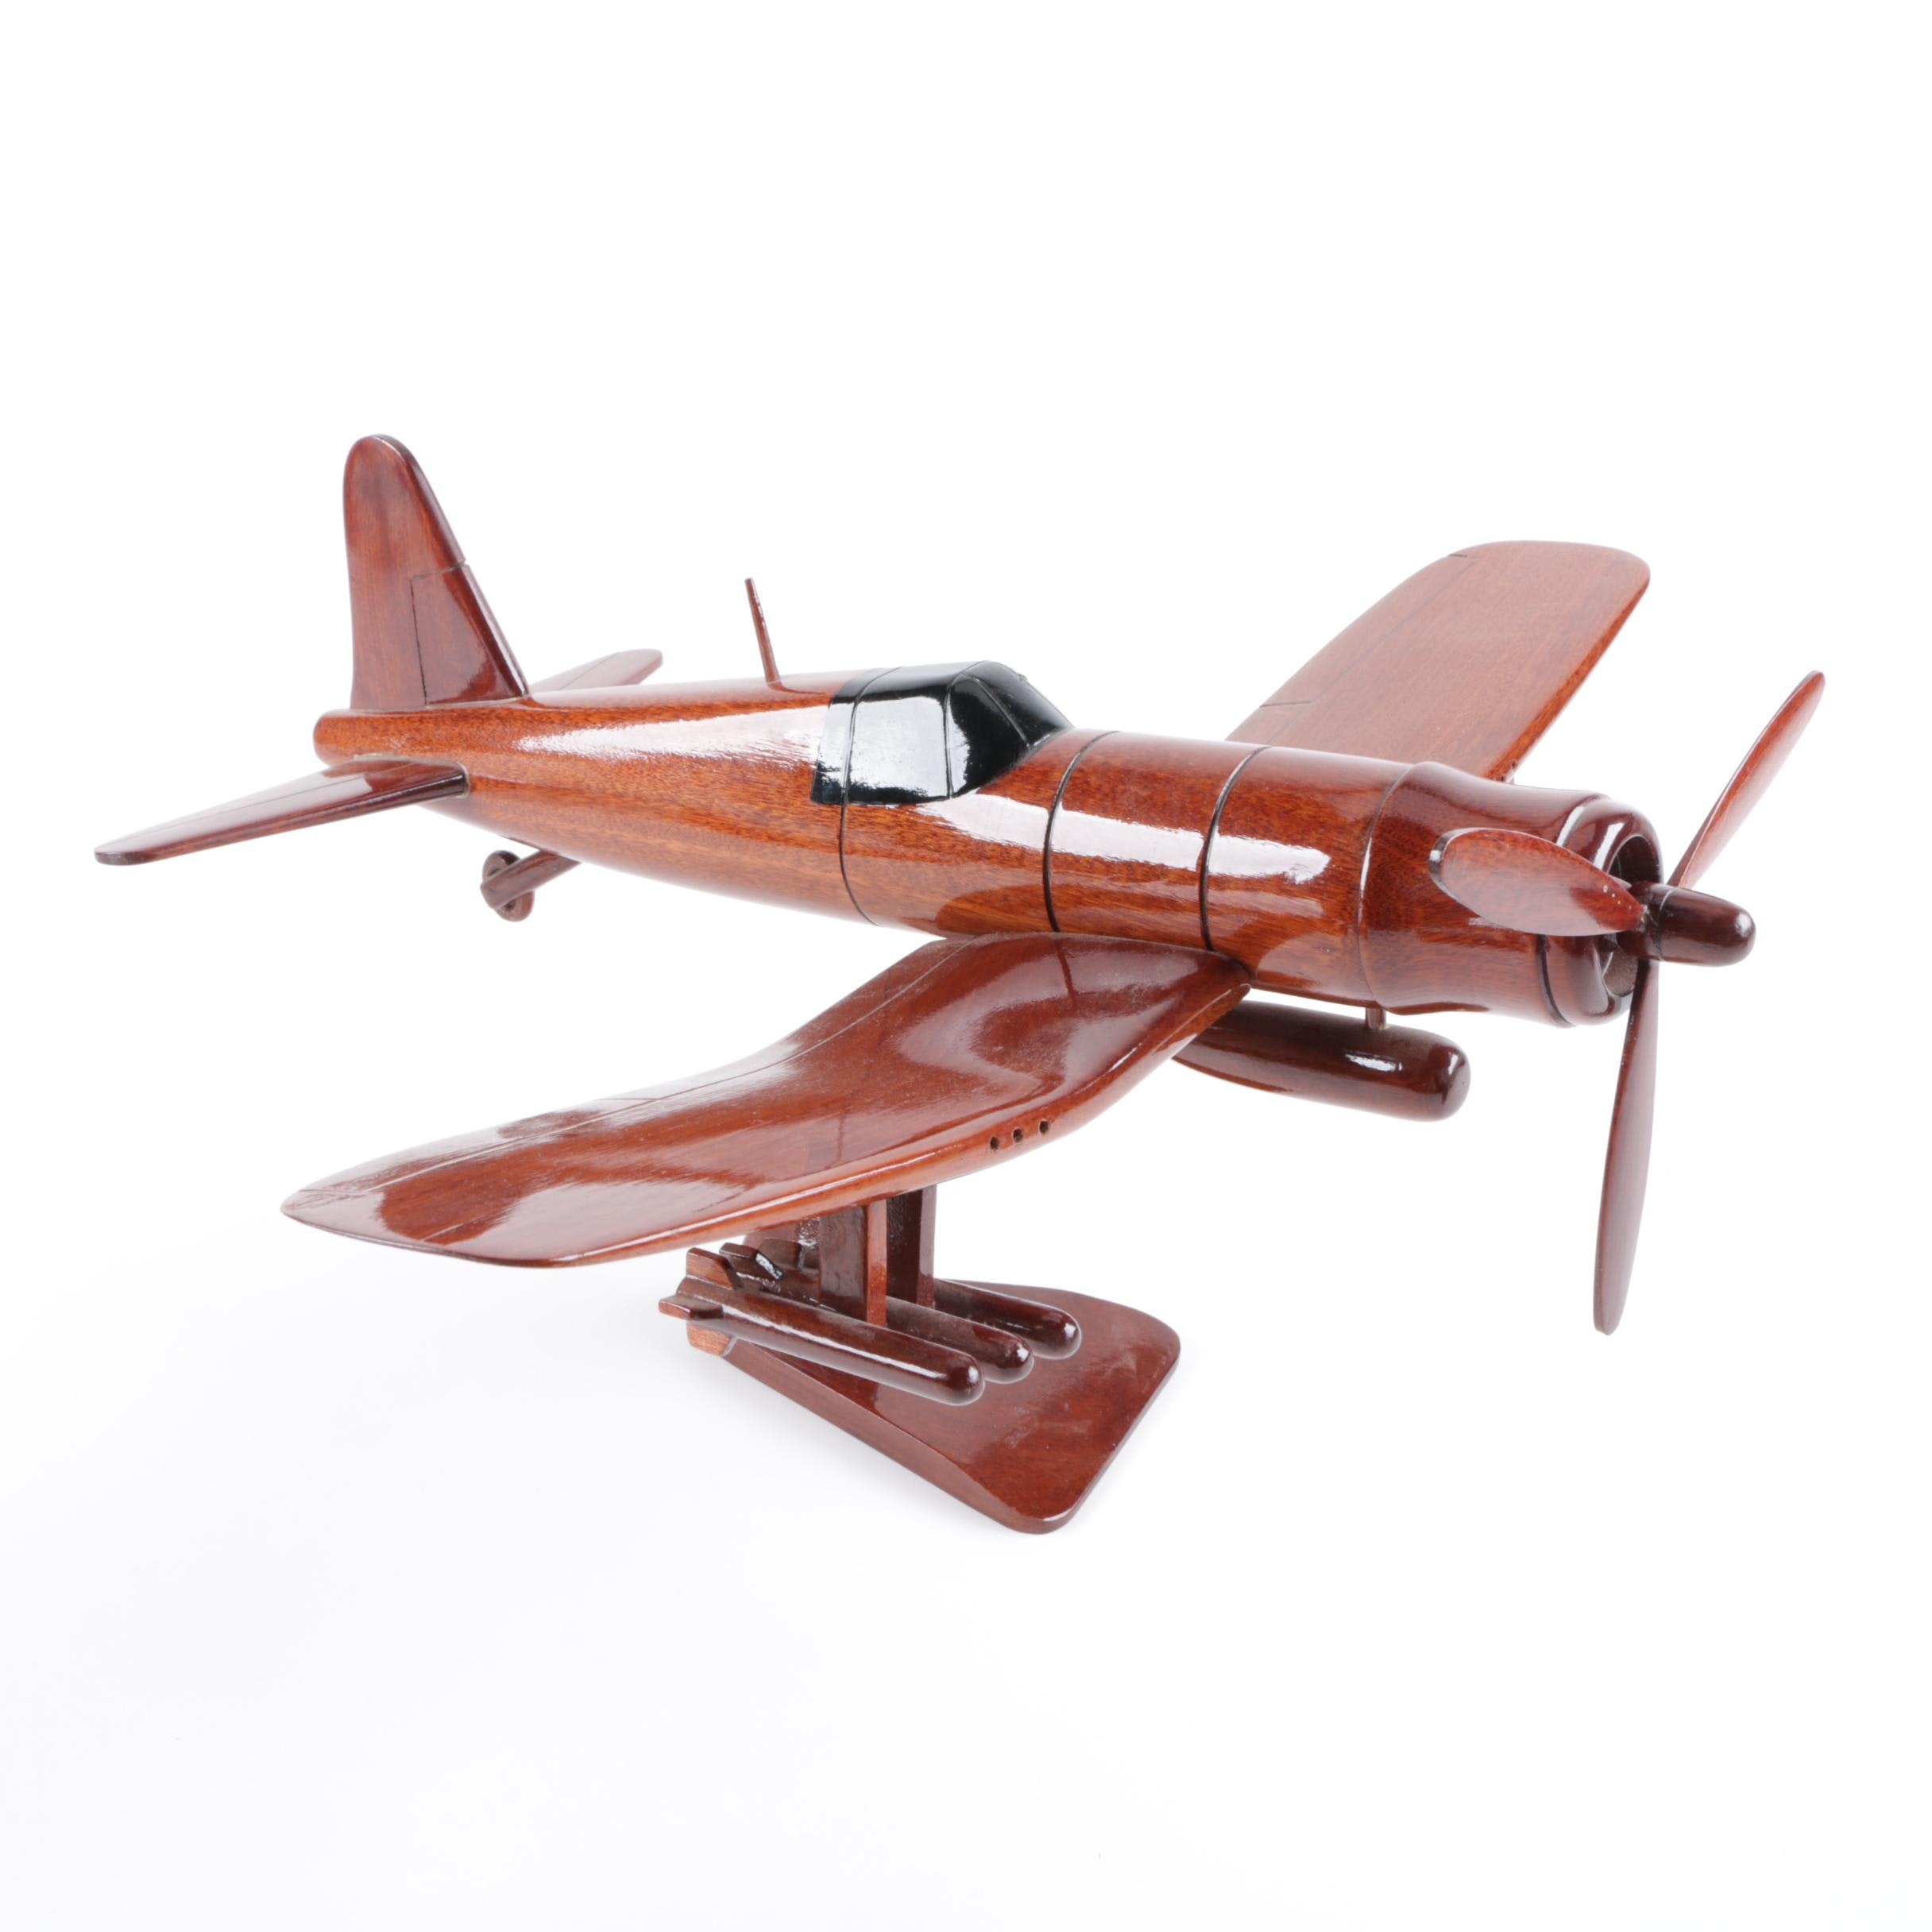 WWII Style Wooden Model Airplane